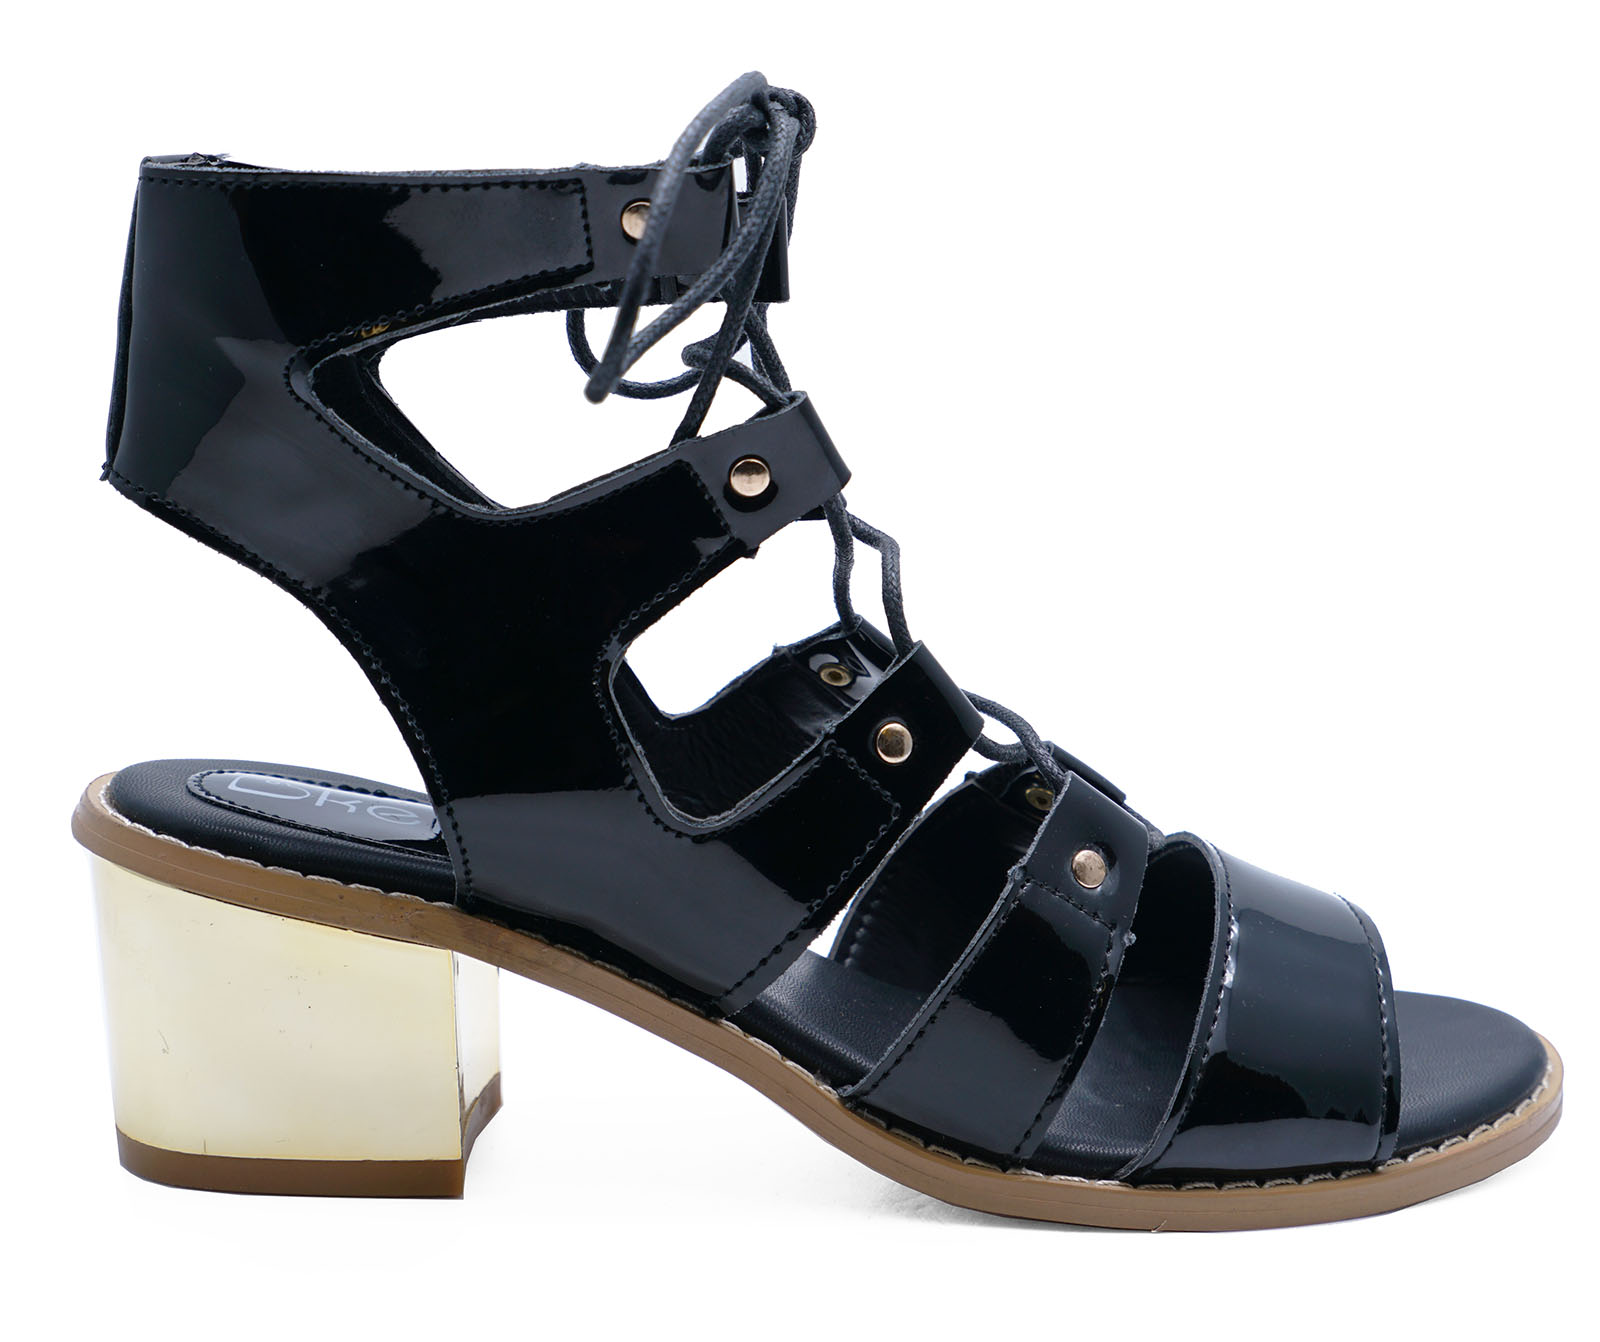 LADIES BLACK LACE-UP GLADIATOR PEEP-TOE STRAPPY SANDALS SHOES BOOTS SIZES 3-8